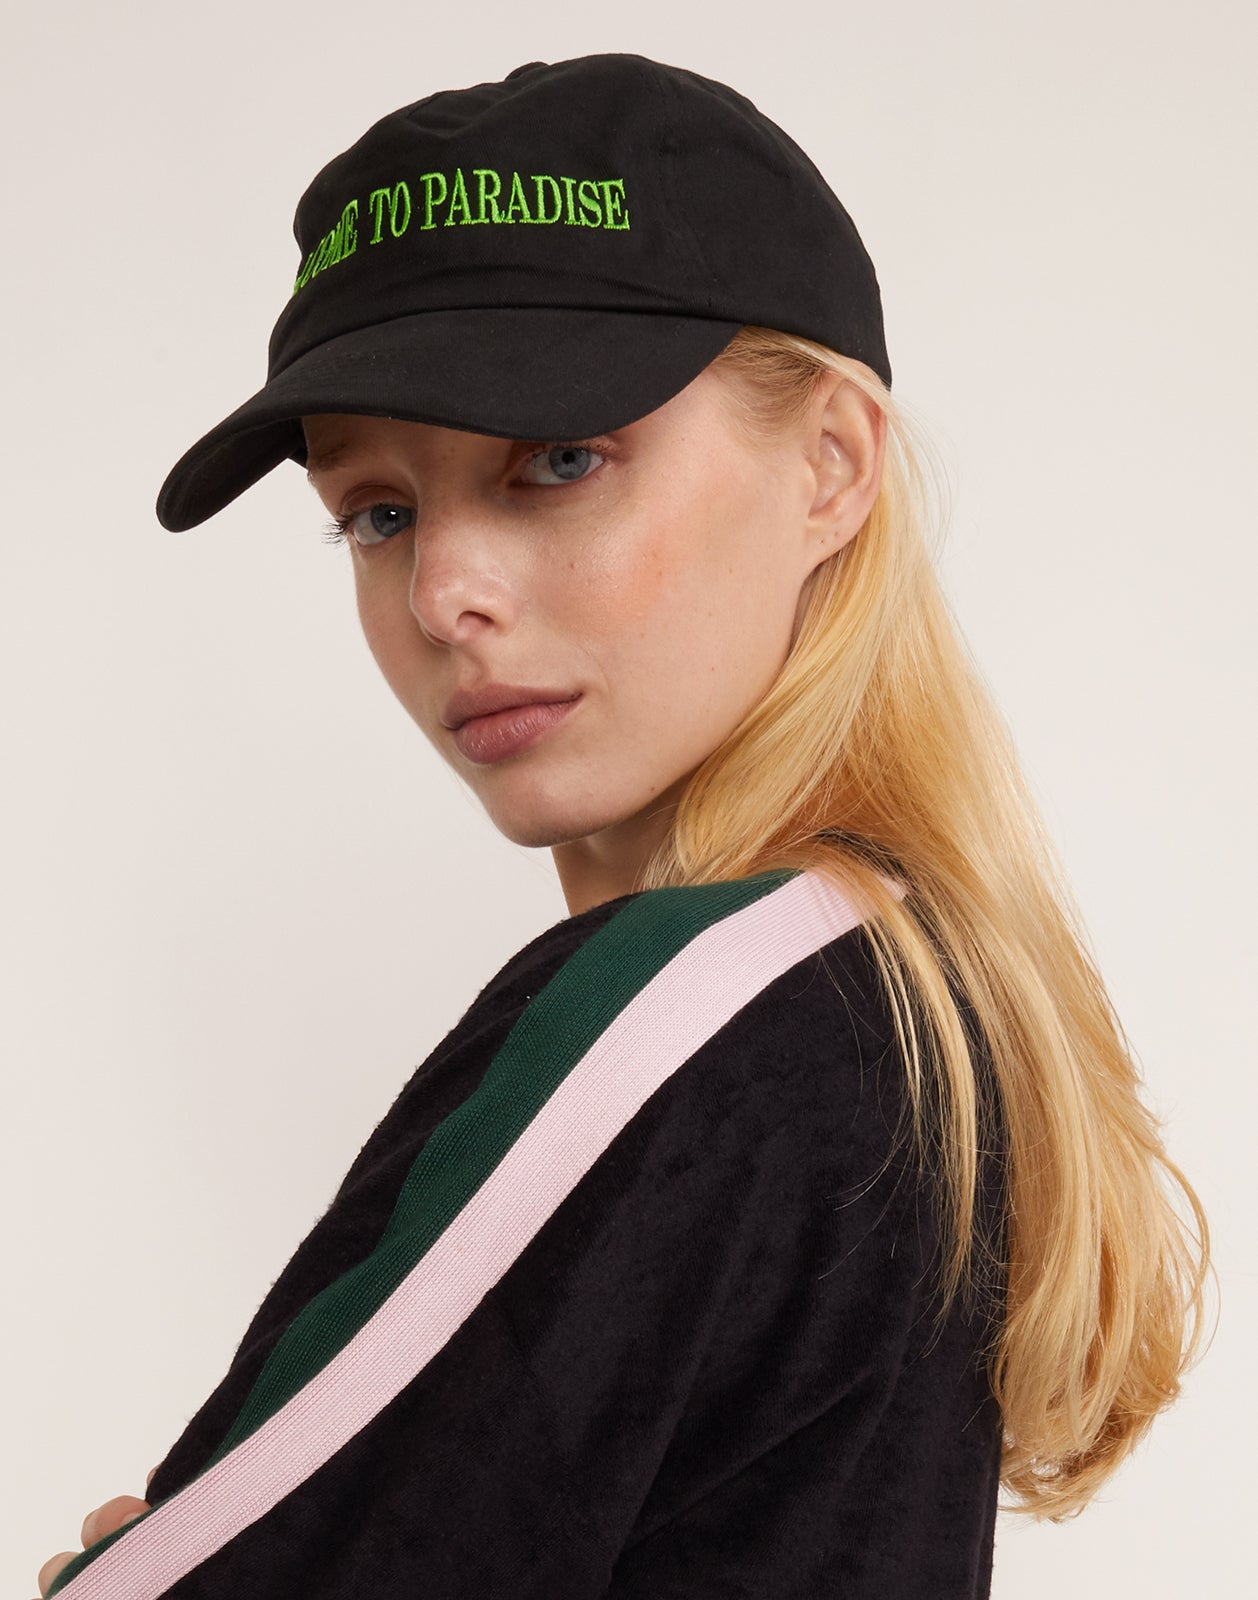 Three quarter view of model wearing the 'Welcome to Paradise' baseball cap with green stitching.